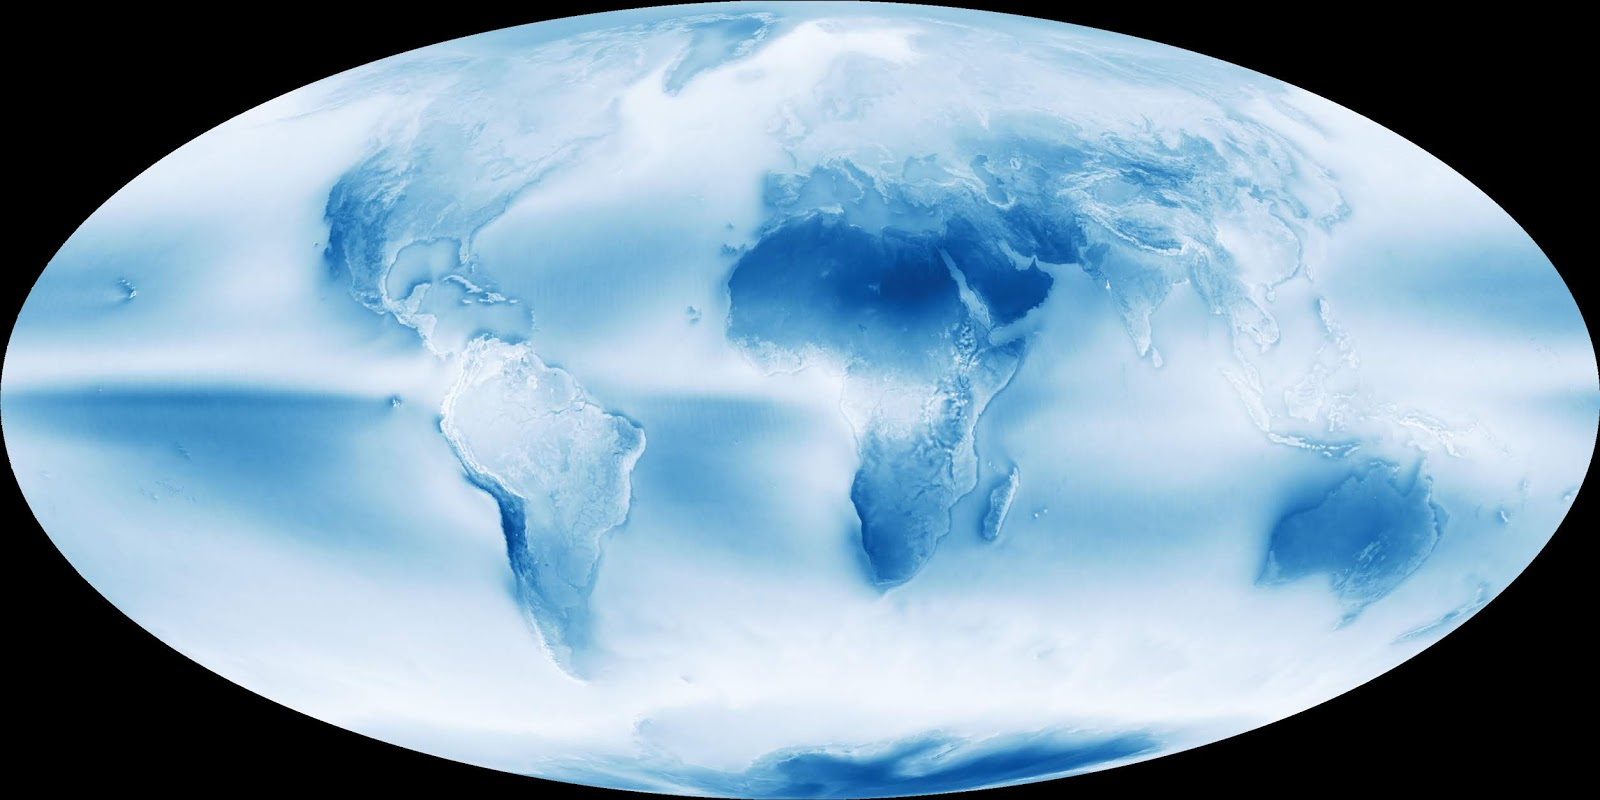 speaking of blue skies here s an interesting map which shows average cloud cover across the world